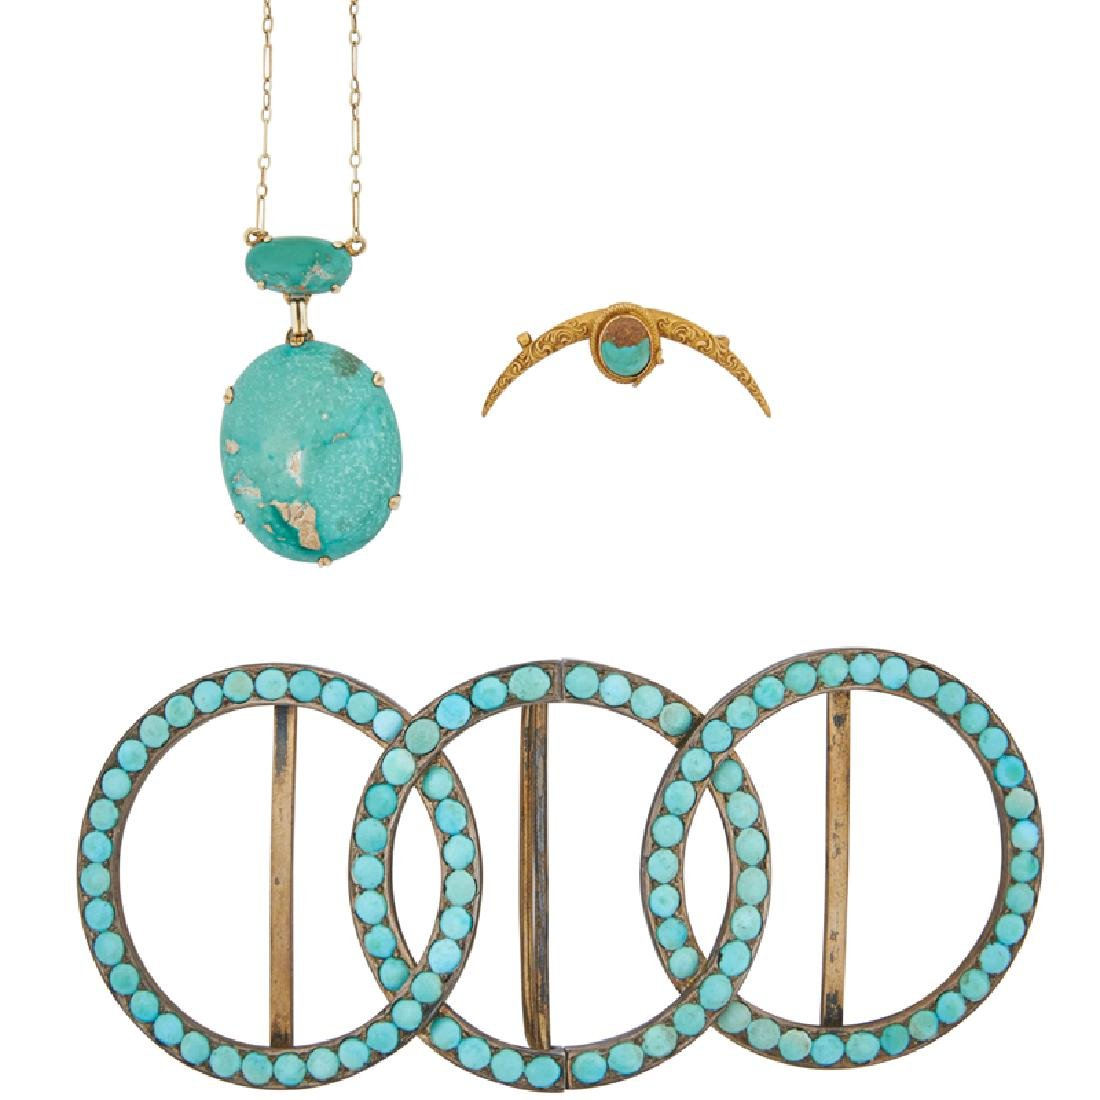 ARTS & CRAFTS TURQUOISE YELLOW GOLD OR SILVER JEWELRY